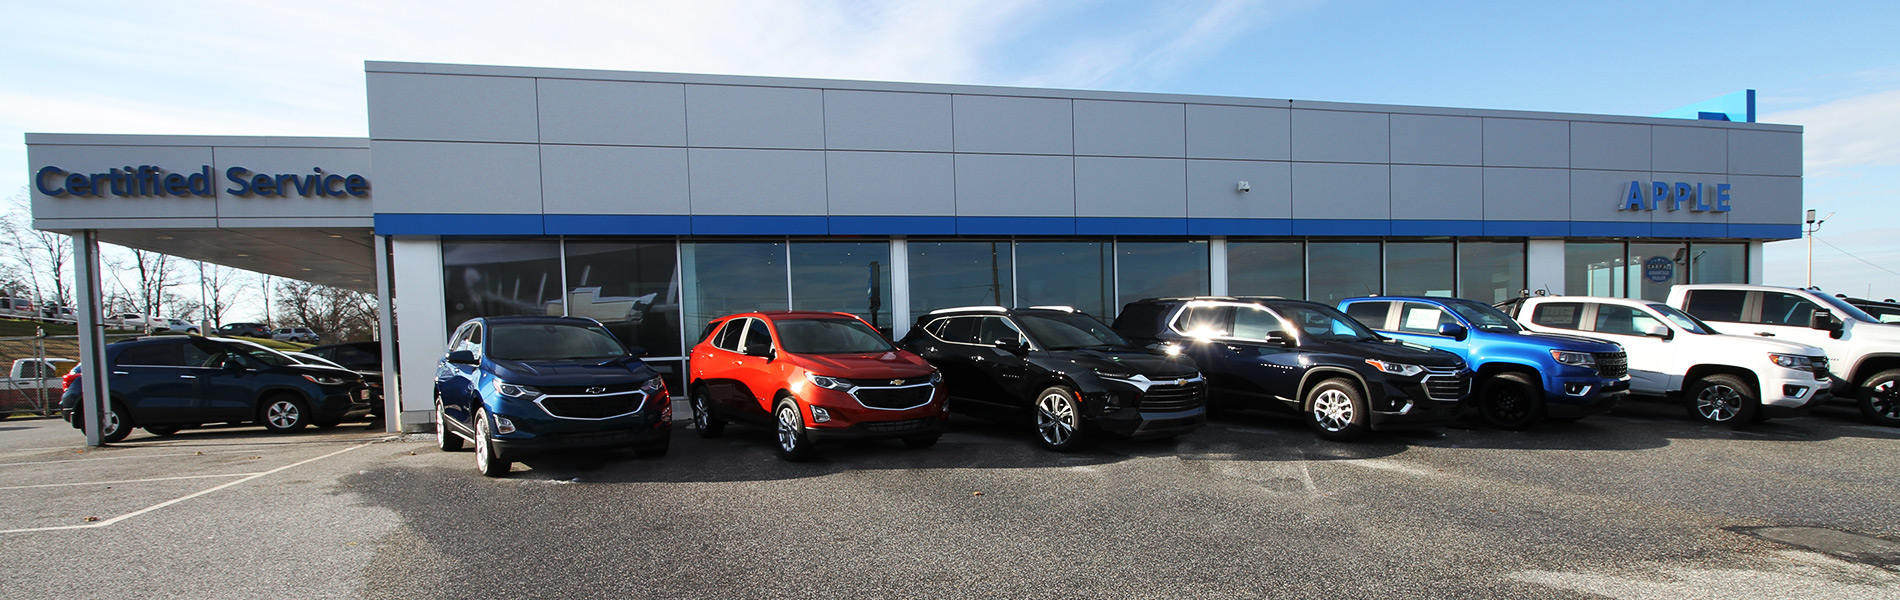 Why Buy At Apple Chevrolet Of Red Lion Chevy Dealer Near Me